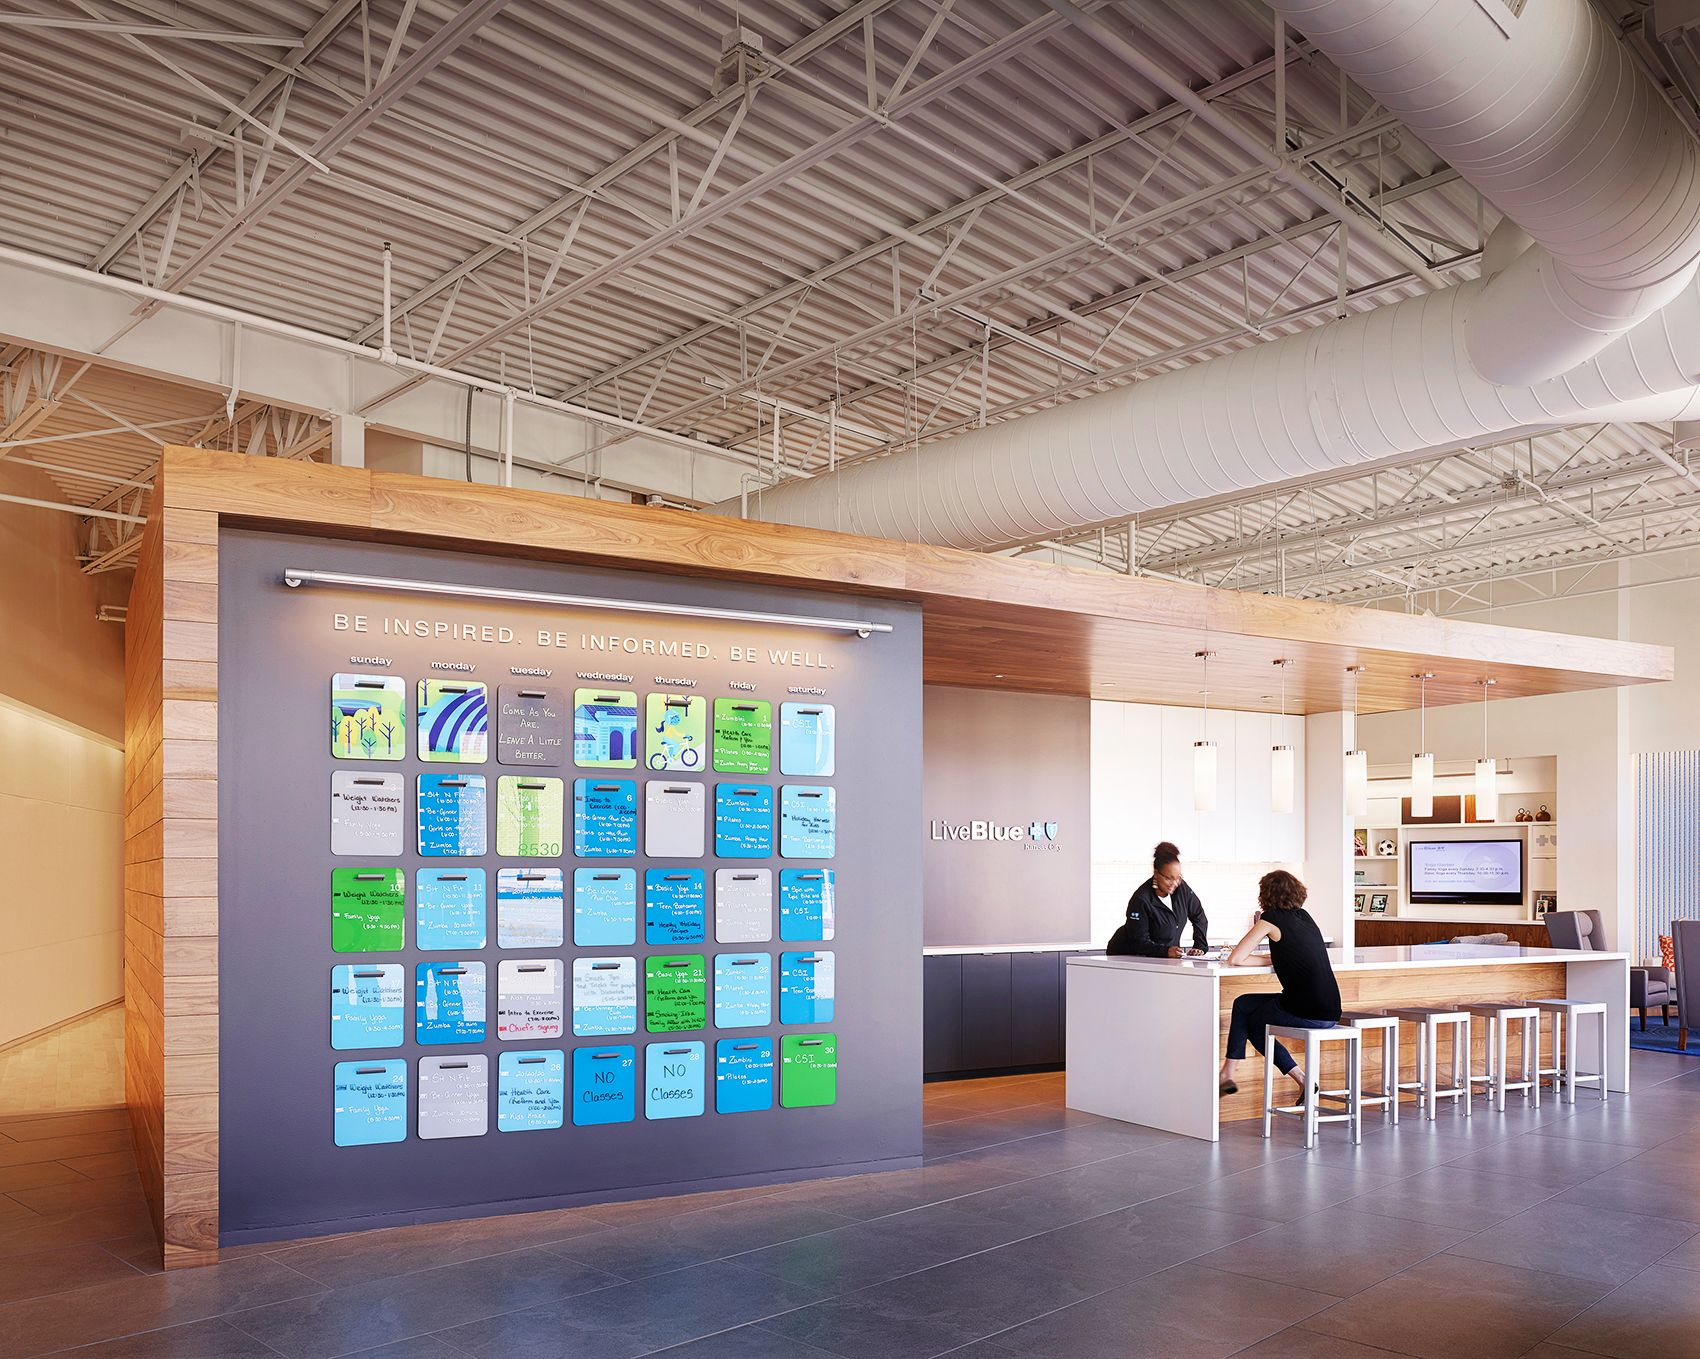 Liveblue Kc By Willoughby Design Brand Strategy Design Aiga